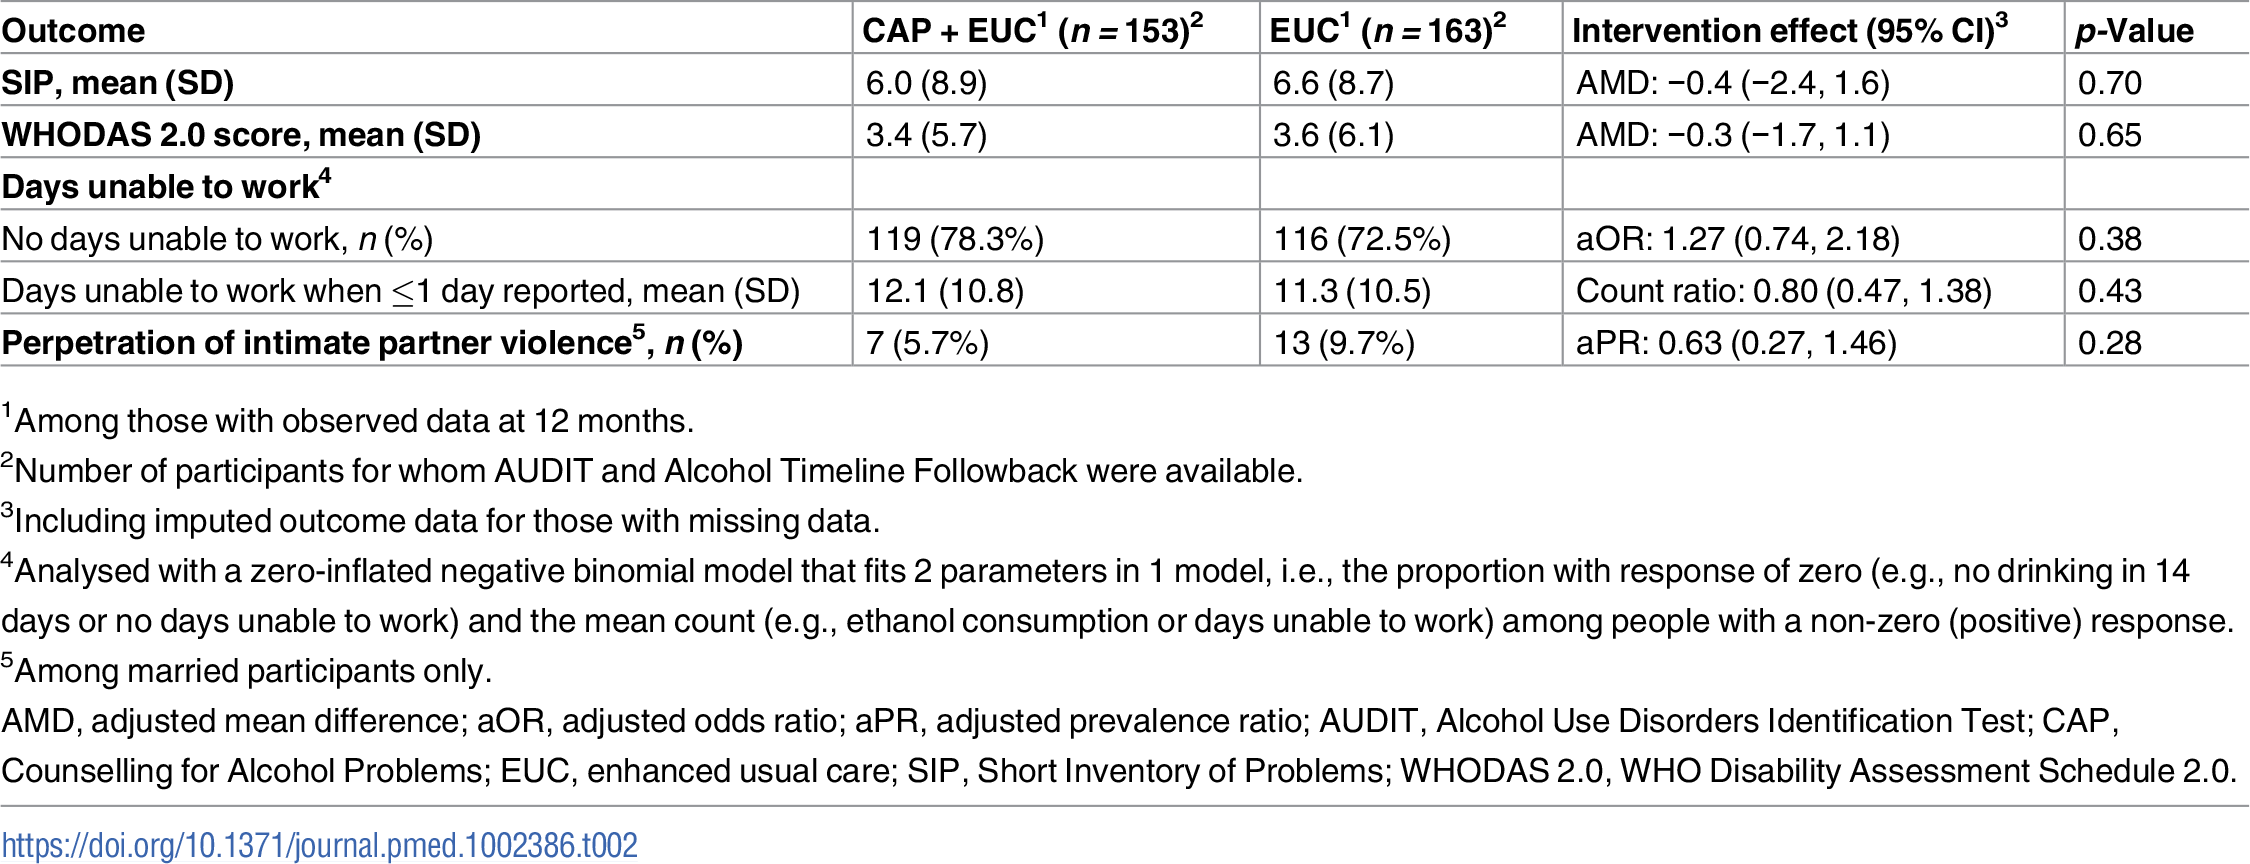 Effect of CAP plus EUC compared with EUC alone on impact of harmful drinking, disability and intimate partner violence at 12 months.